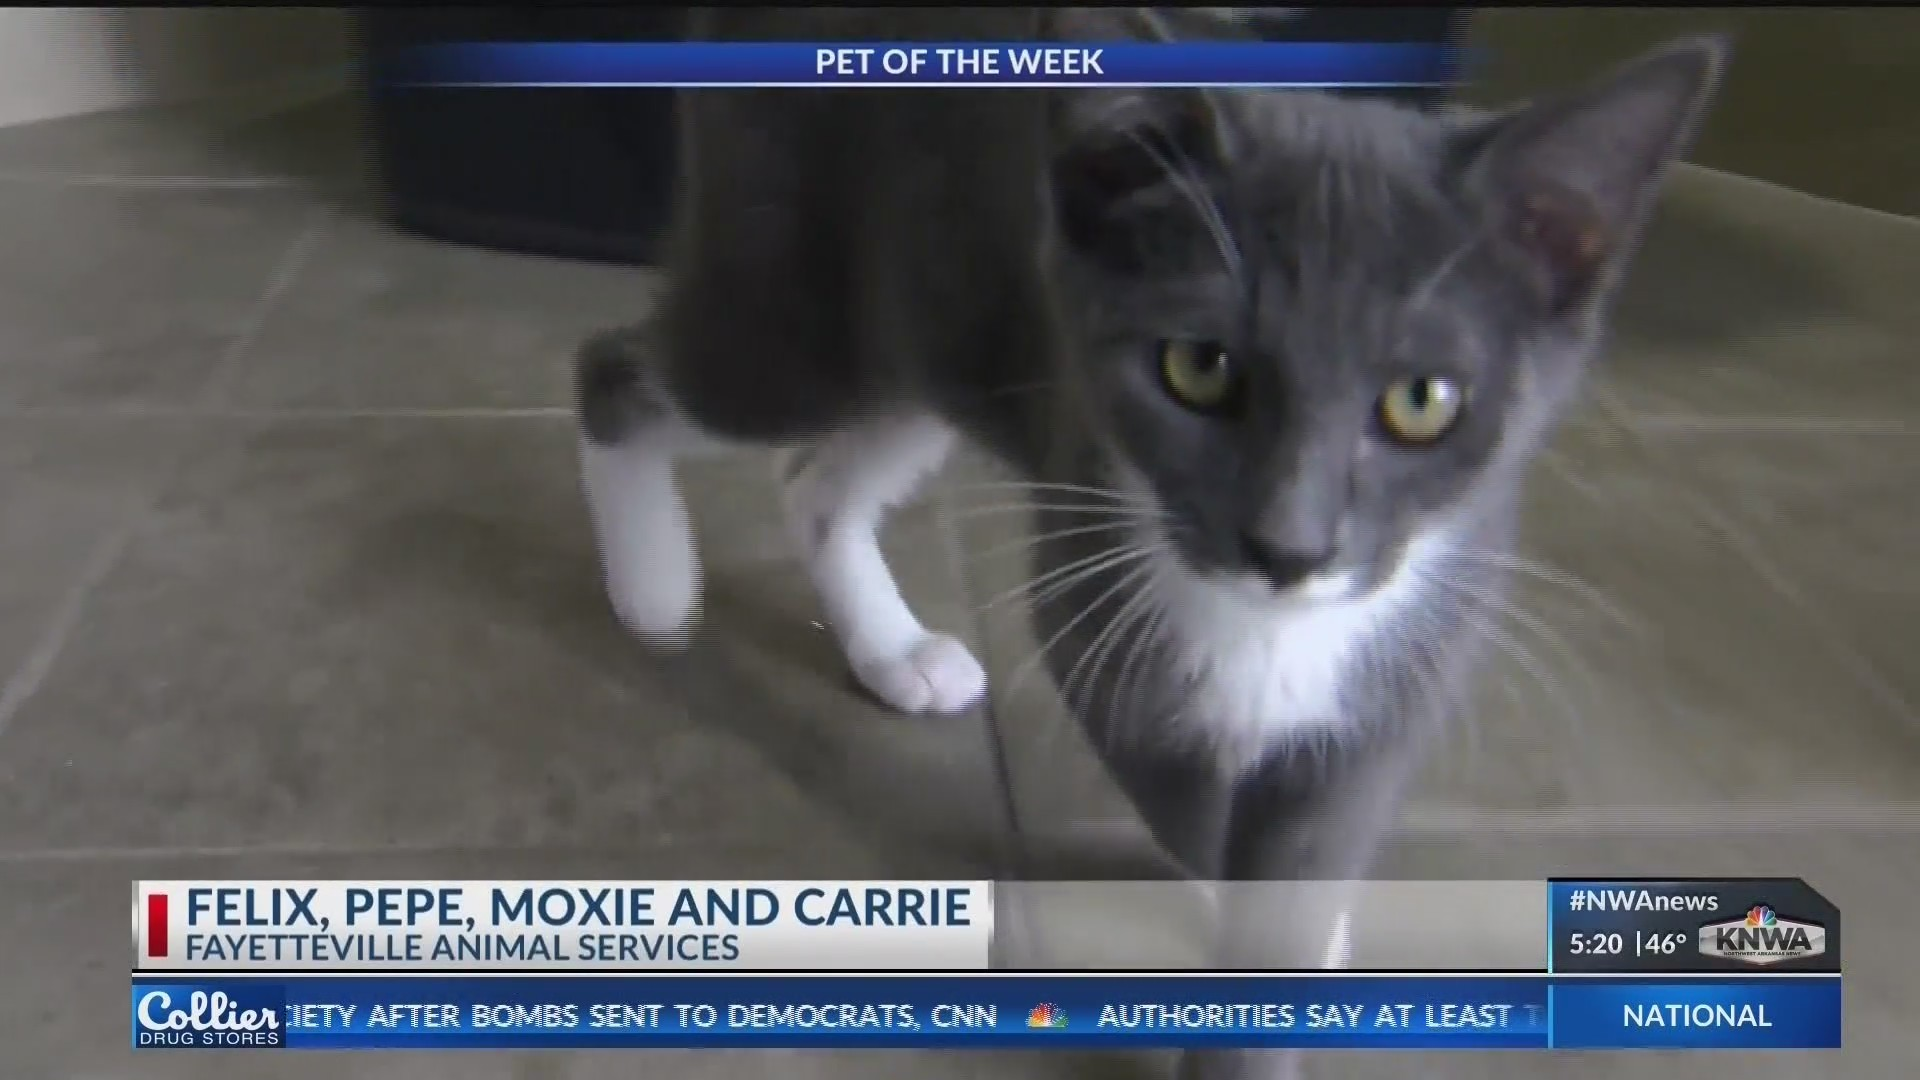 Pet_of_the_Week__Felix__Pepe__Moxie_and__1_20181026134216